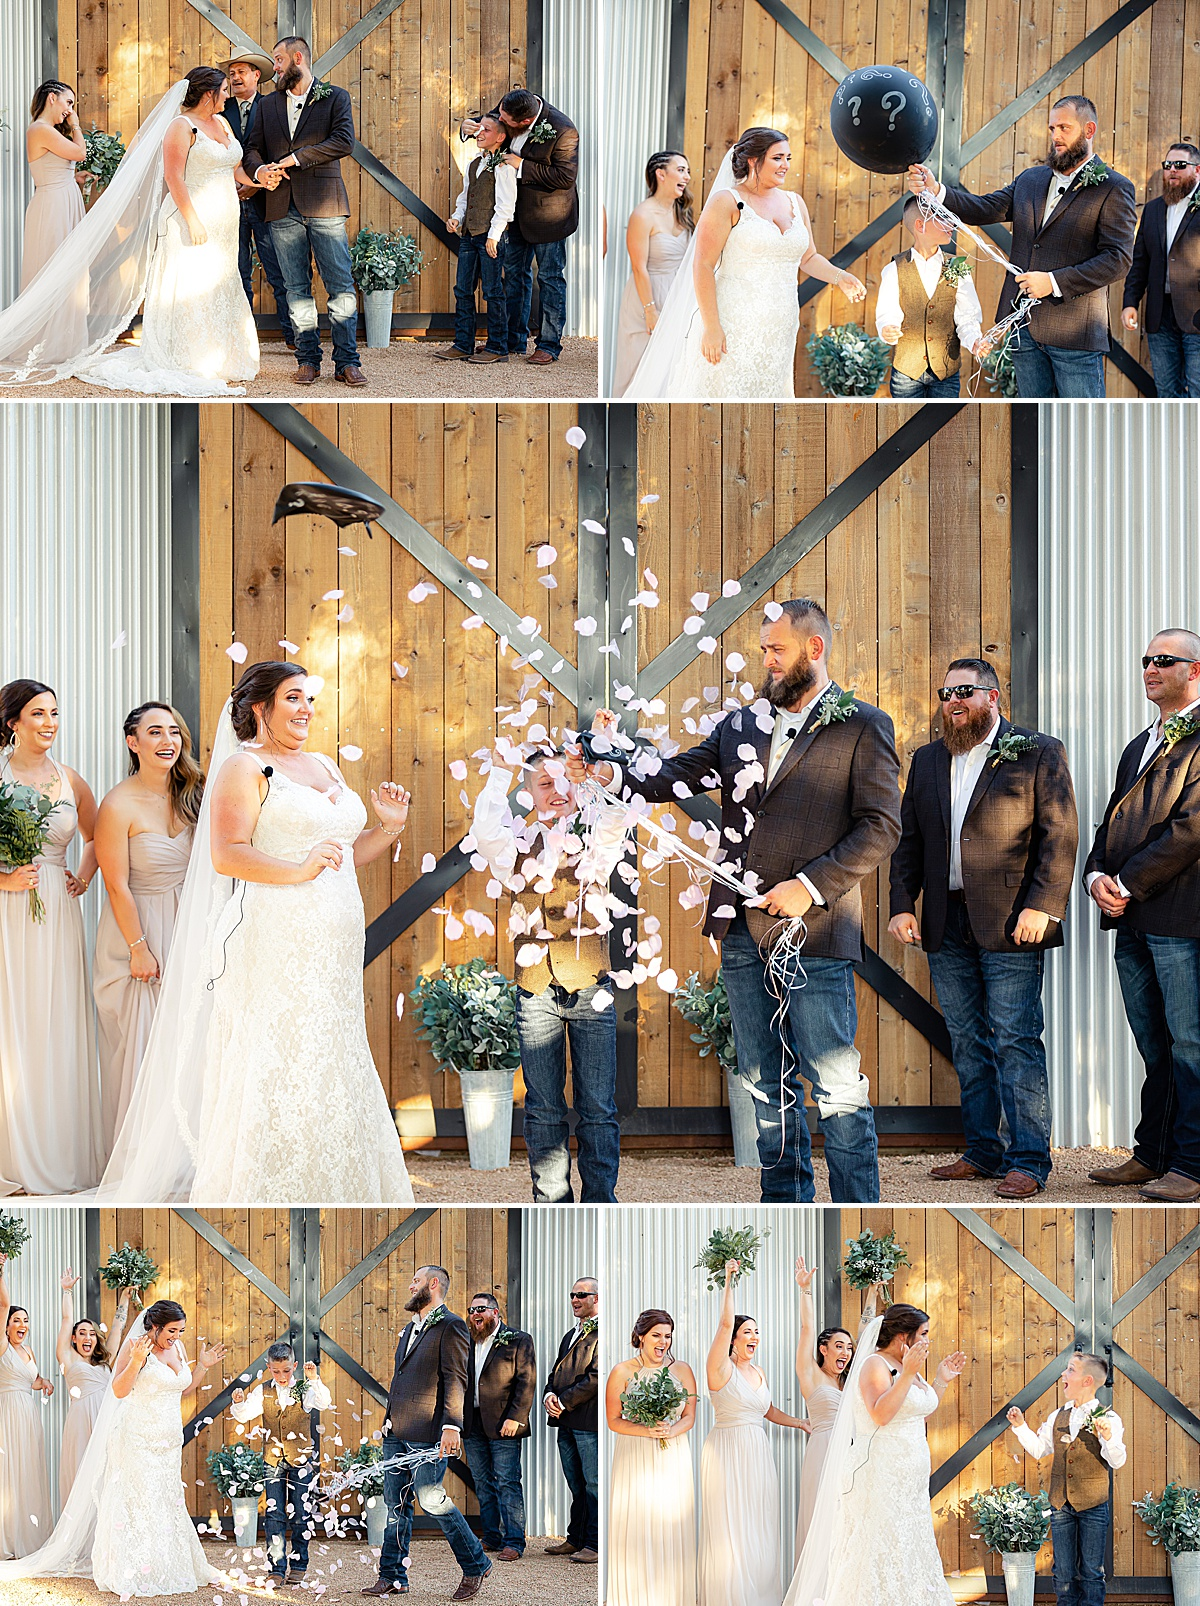 Rustic-Texas-Wedding-Hollow-Creek-Ranch-Carly-Barton-Photography_0125.jpg